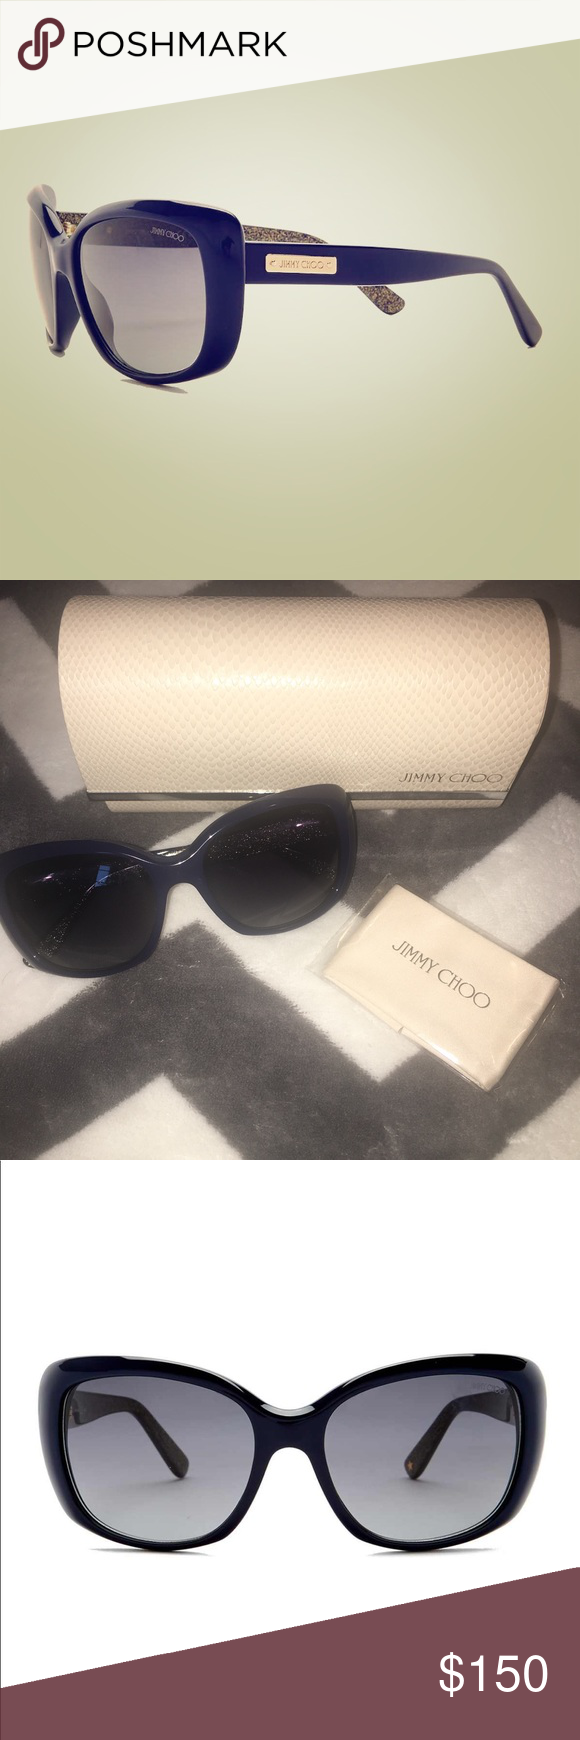 ede44dd2ba1 Jimmy Choo Kalia oversized sunglasses blue glitter Brand new with original  case and dust cloth. 100% authentic Jimmy Choo Accessories Sunglasses